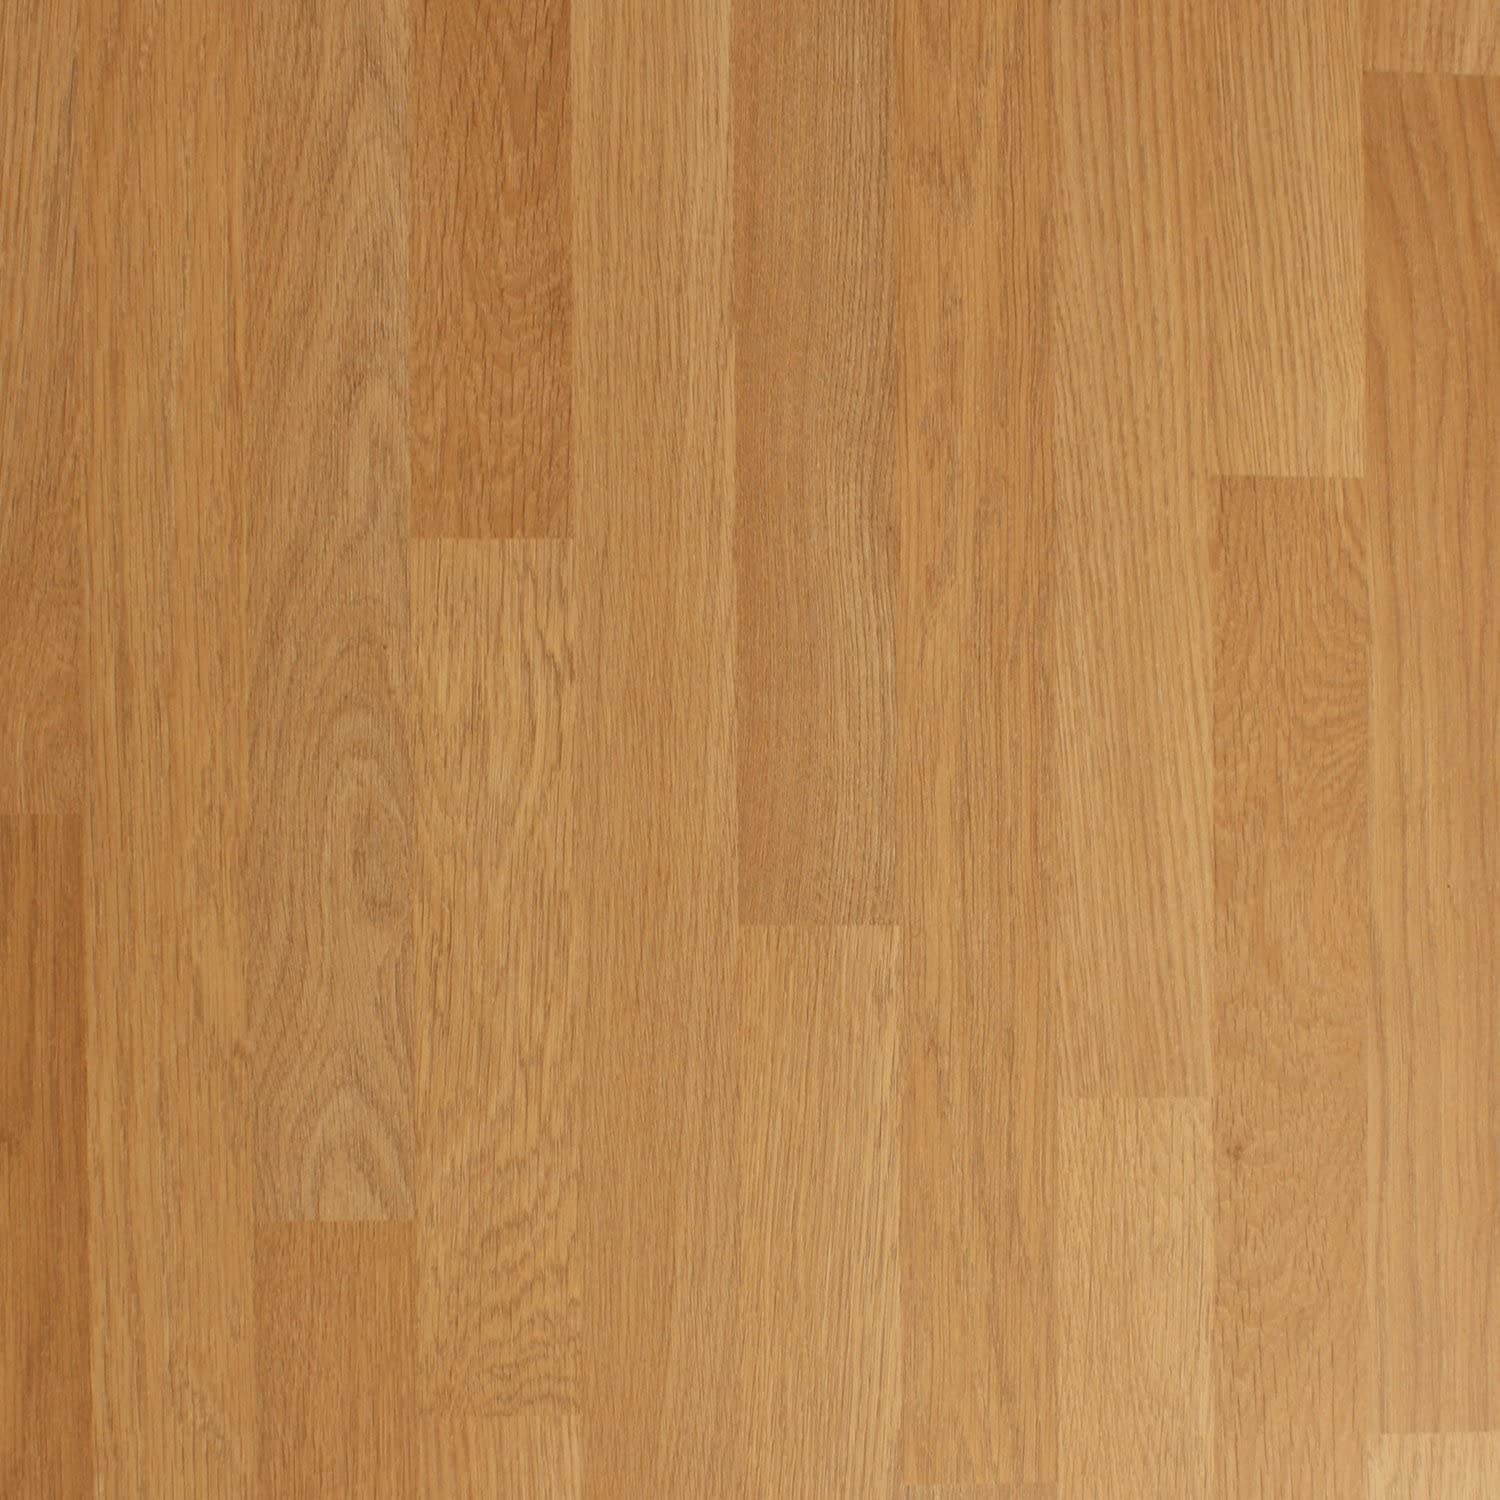 Blocked Dark Walnut 40mm Laminate Kitchen Worktop 1m 2m 3m Free Edging Strip